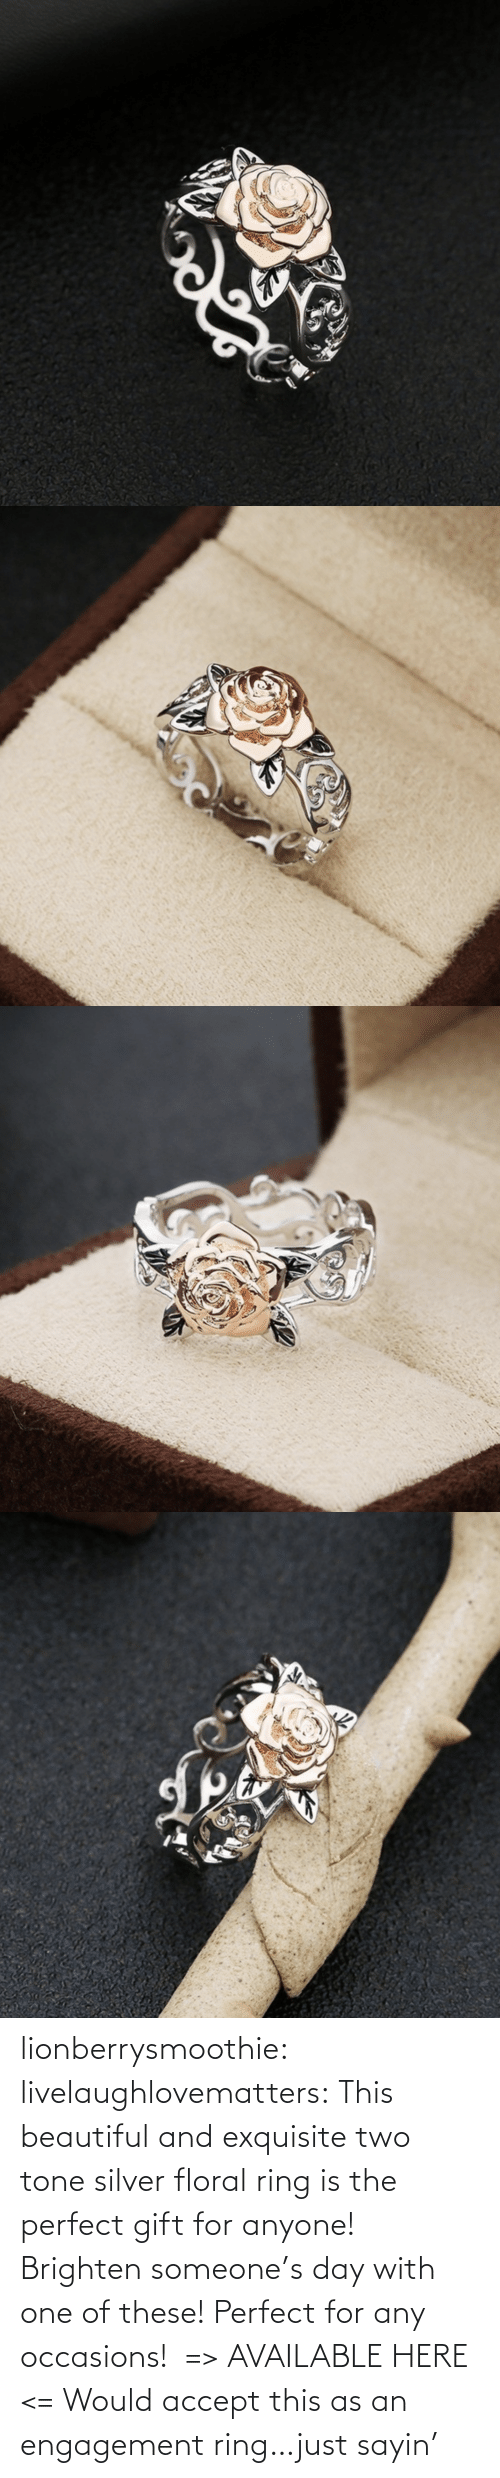 tone: lionberrysmoothie:  livelaughlovematters: This beautiful and exquisite two tone silver floral ring is the perfect gift for anyone! Brighten someone's day with one of these! Perfect for any occasions!  => AVAILABLE HERE <=    Would accept this as an engagement ring…just sayin'